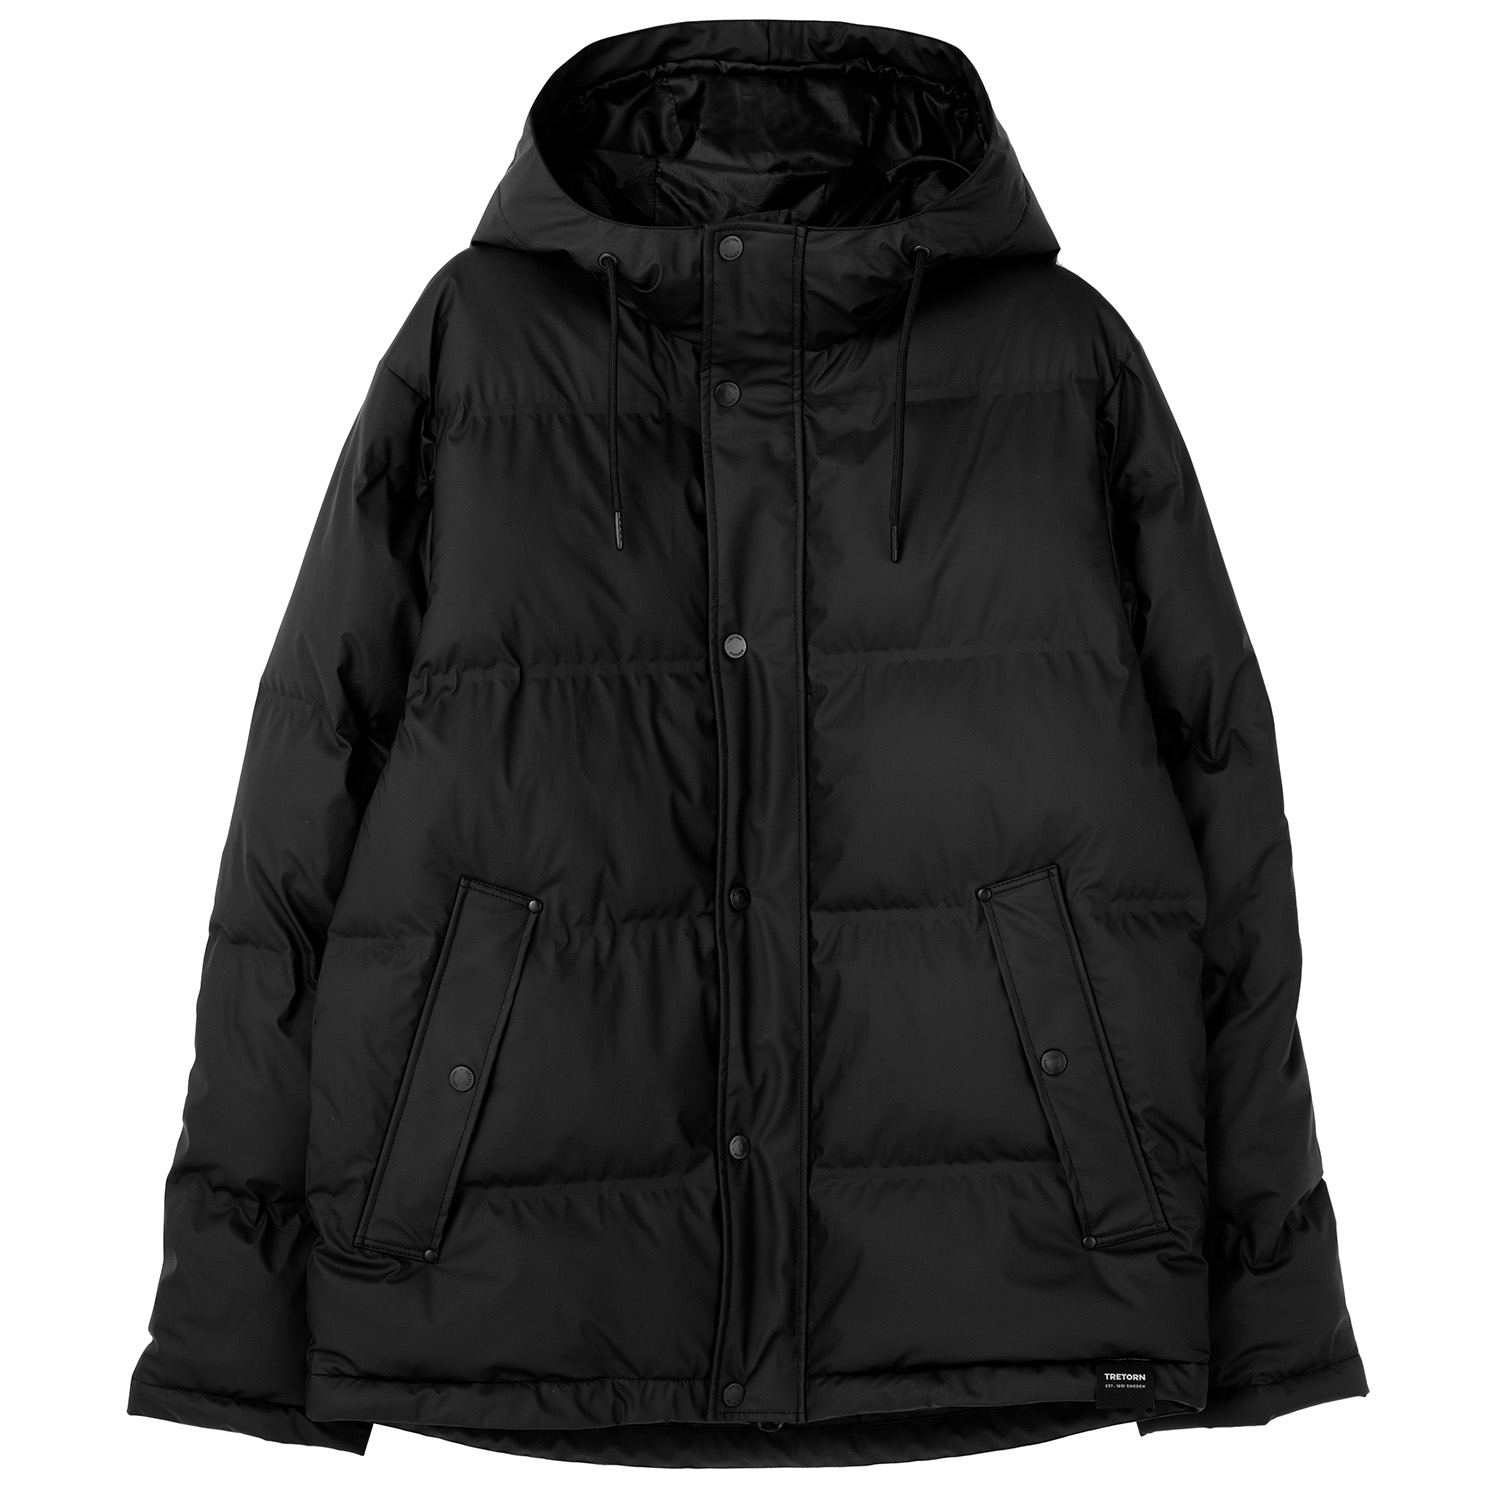 Mens Jackets & Coats available from Blackleaf